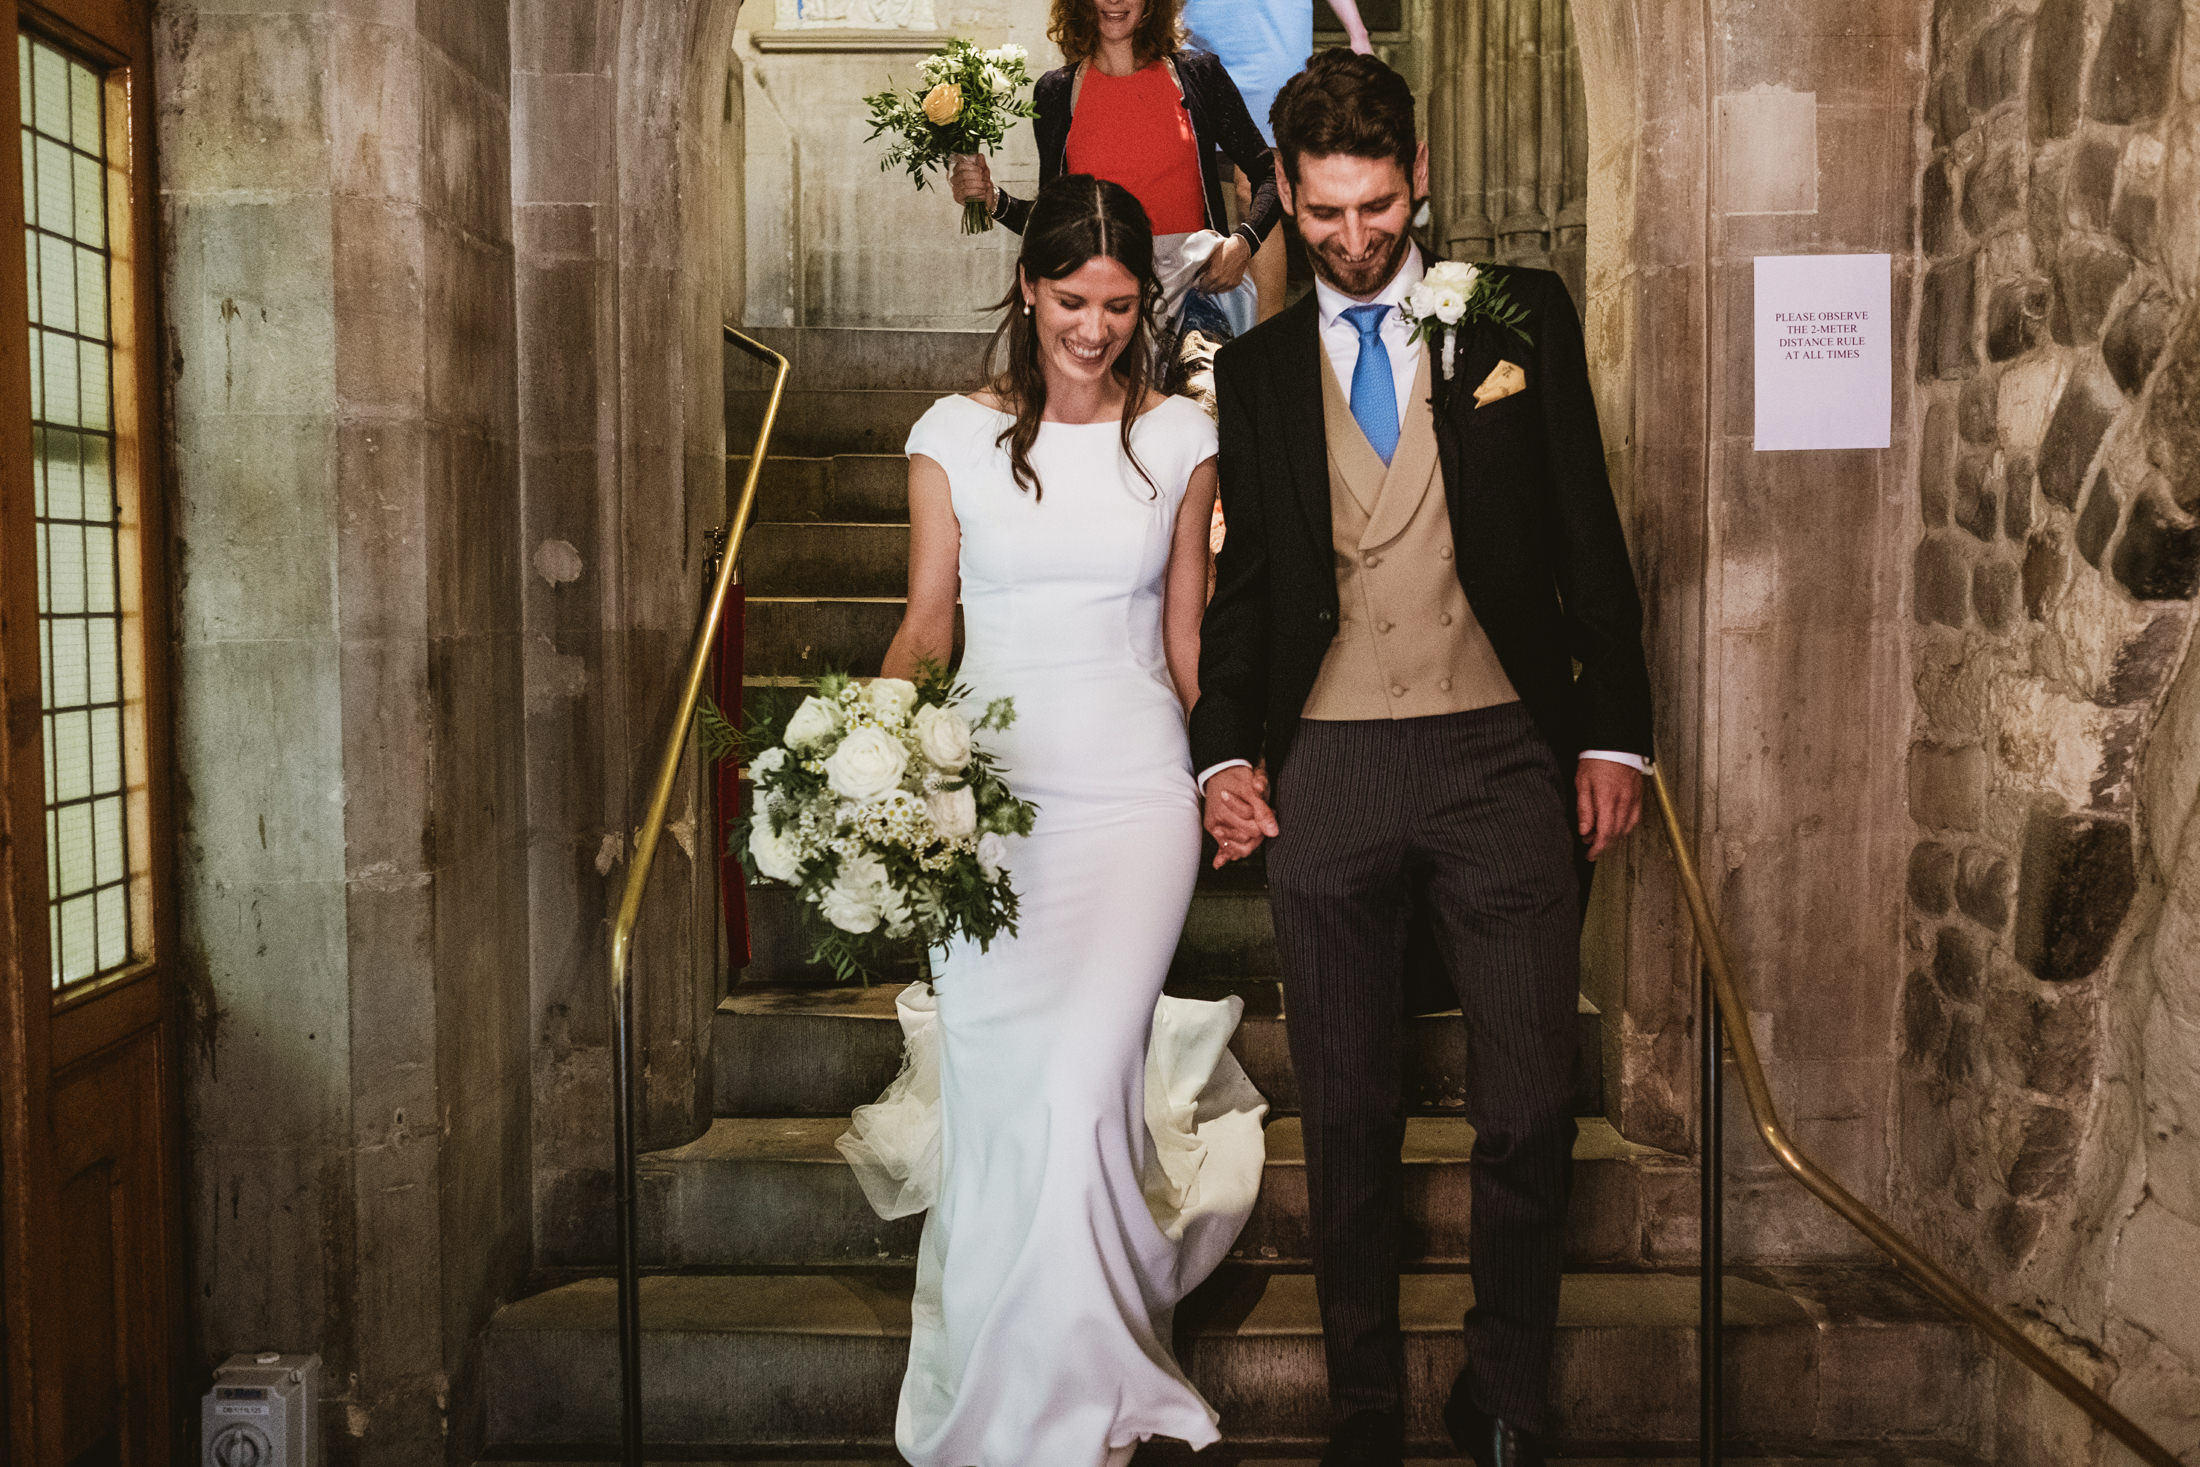 Bride and Groom walk down church steps hand-in-hand immediately following their wedding ceremony